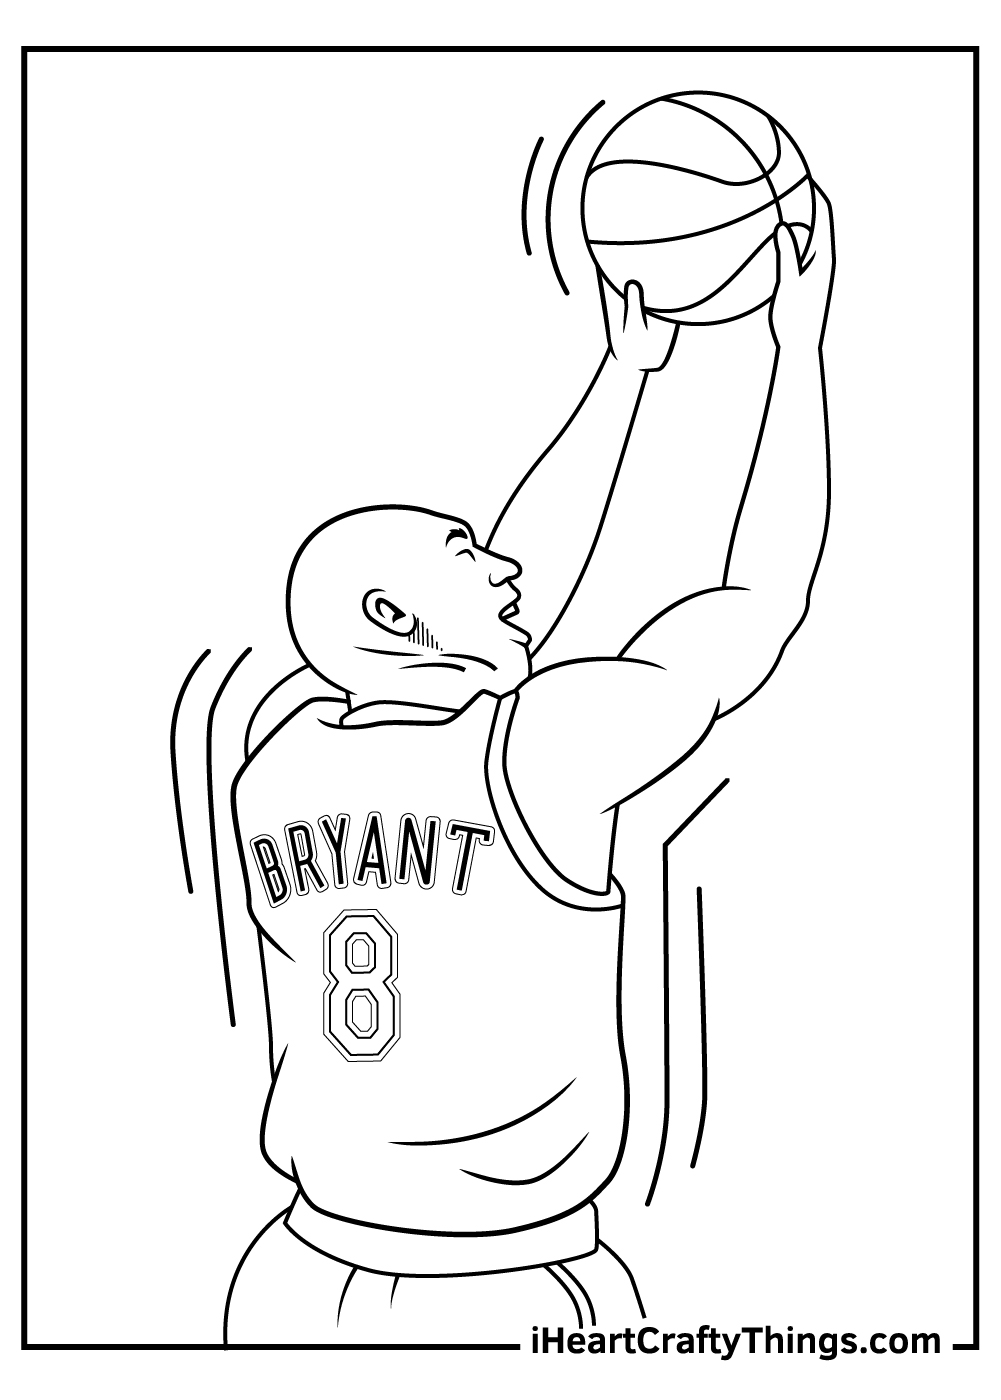 Kobe Bryant Coloring Pages for kids